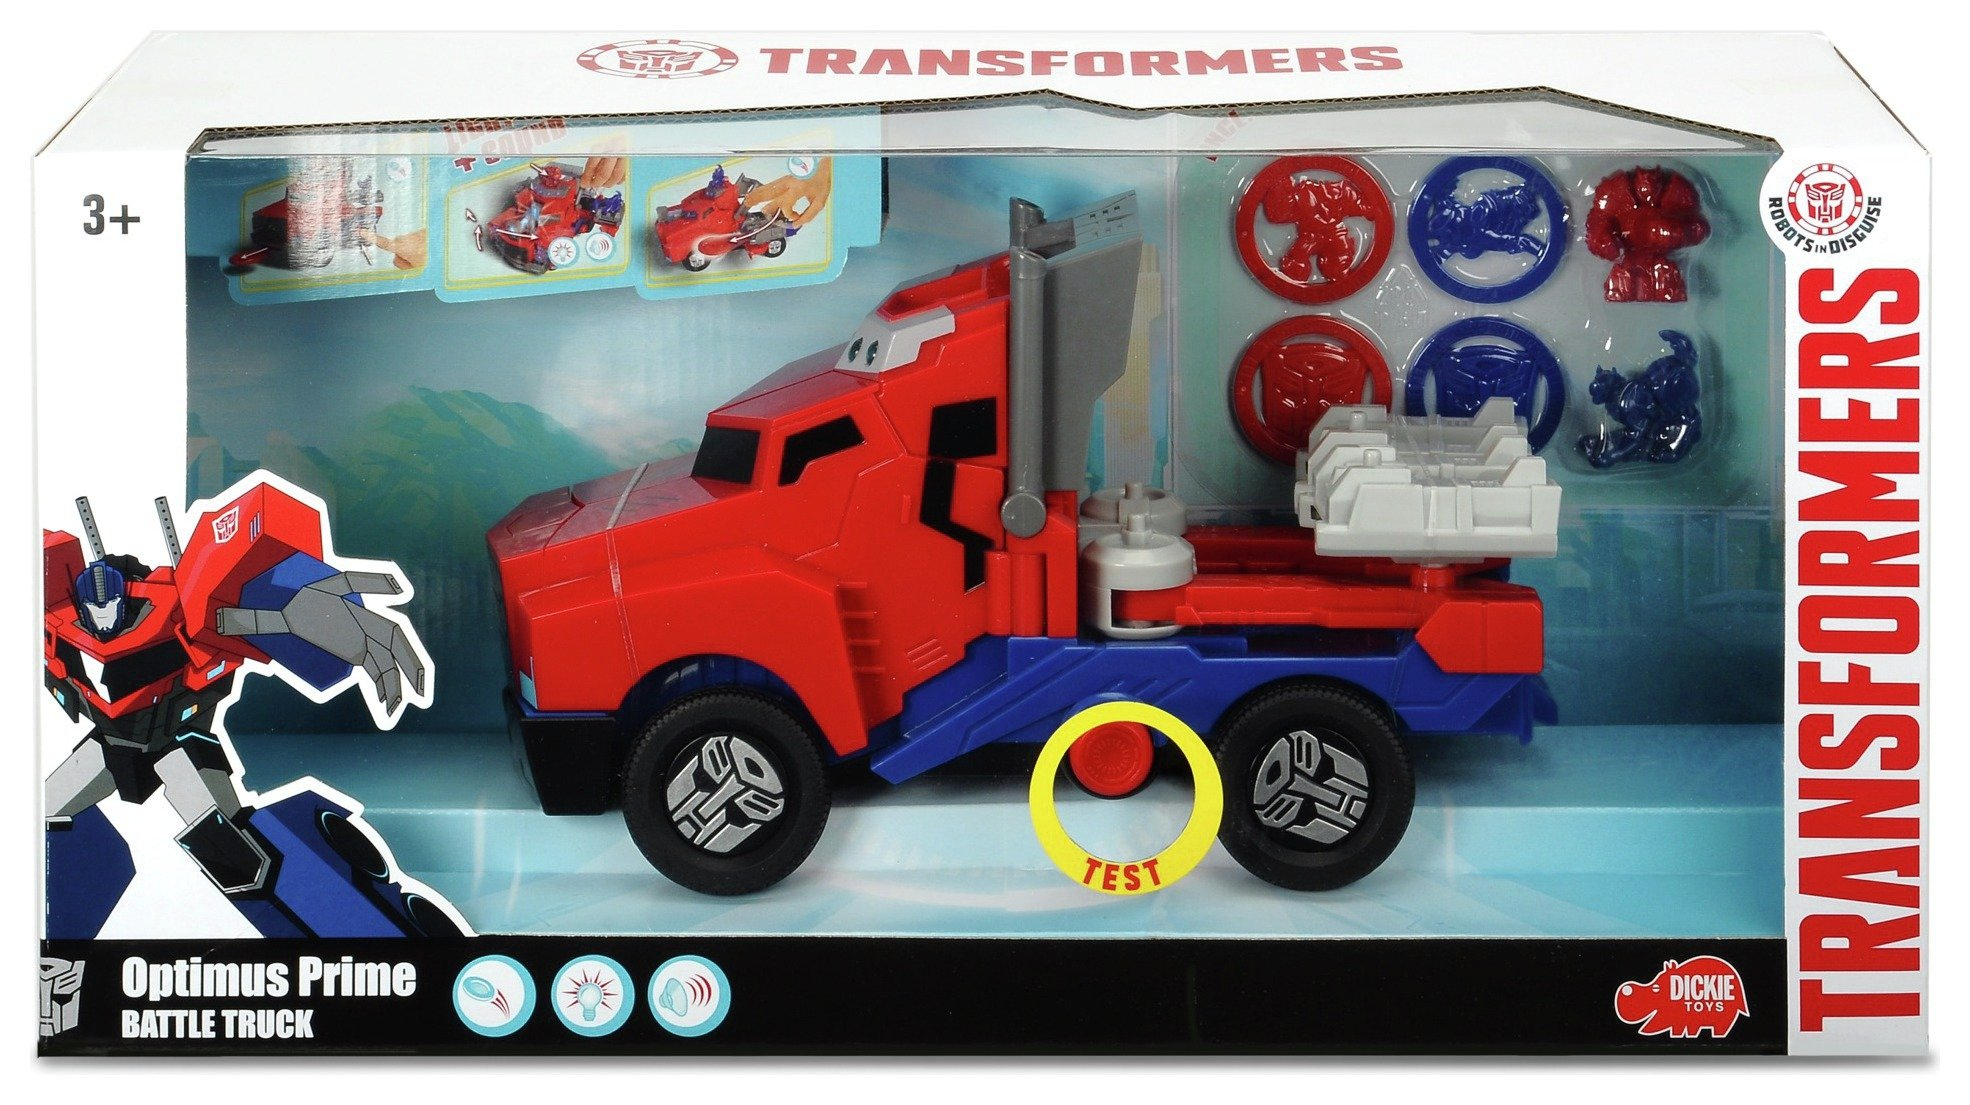 Image of Dickie Opitmus Prime Battle Truck